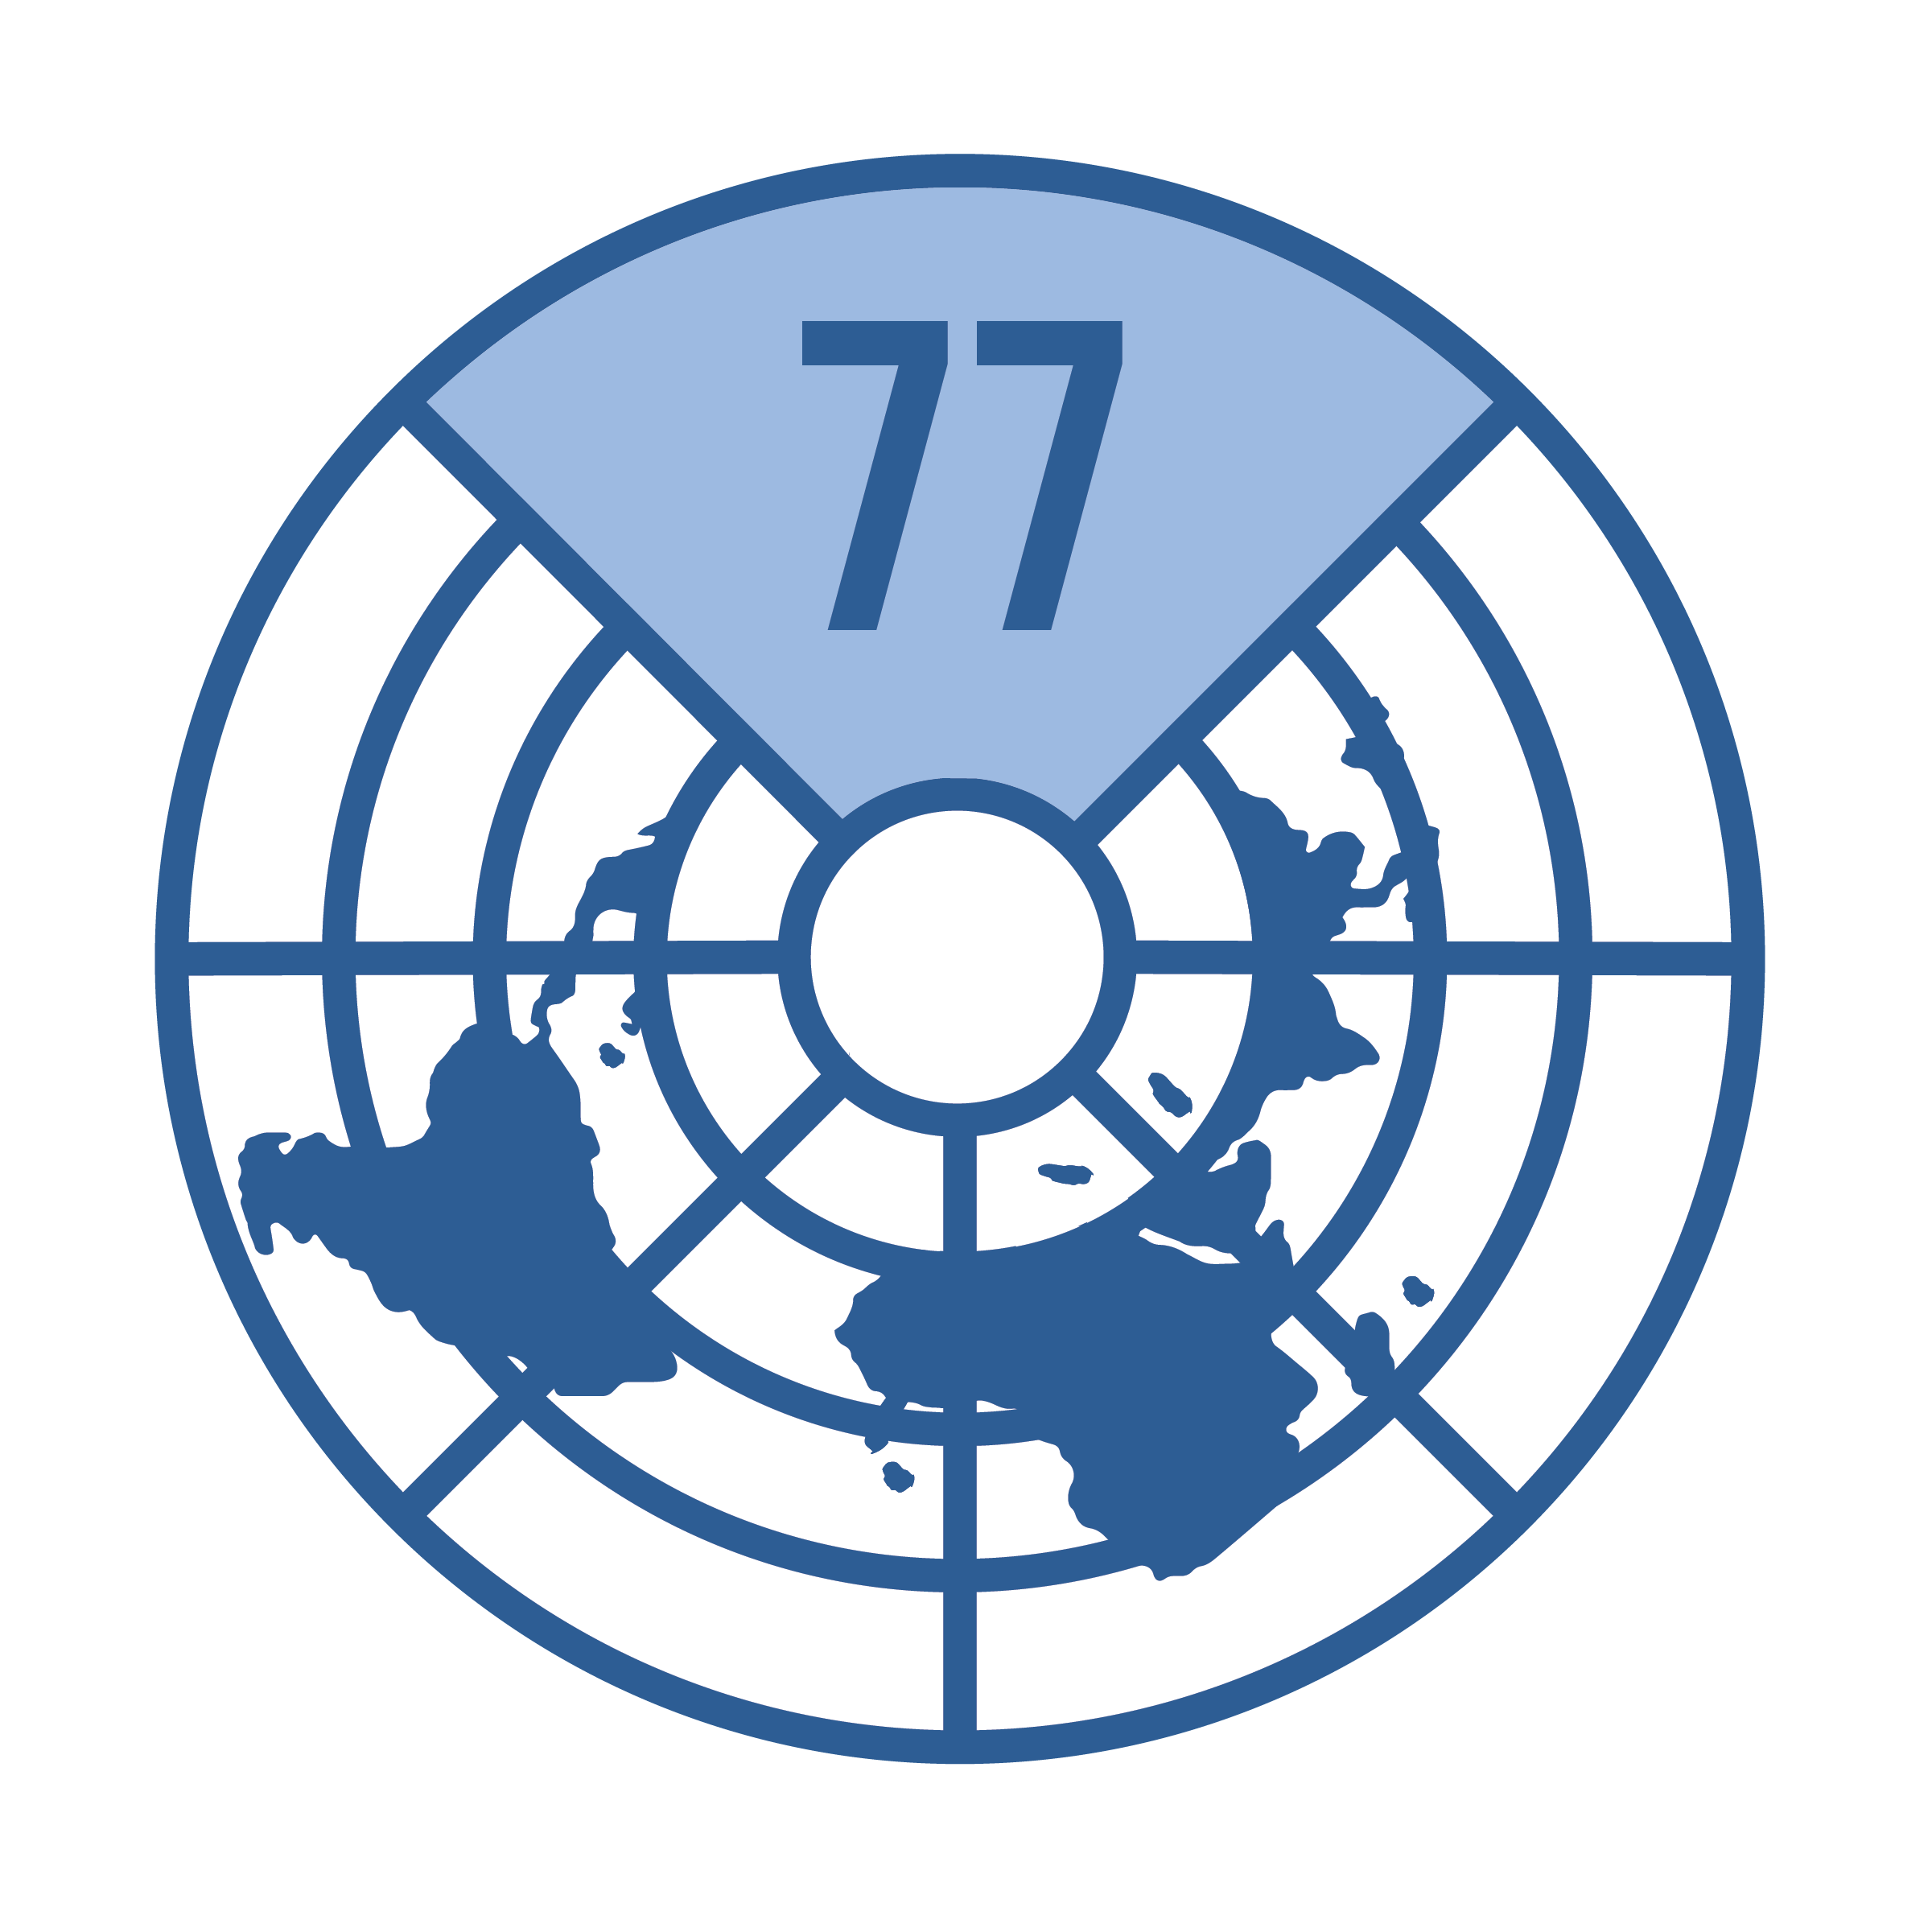 logo for Group of 77